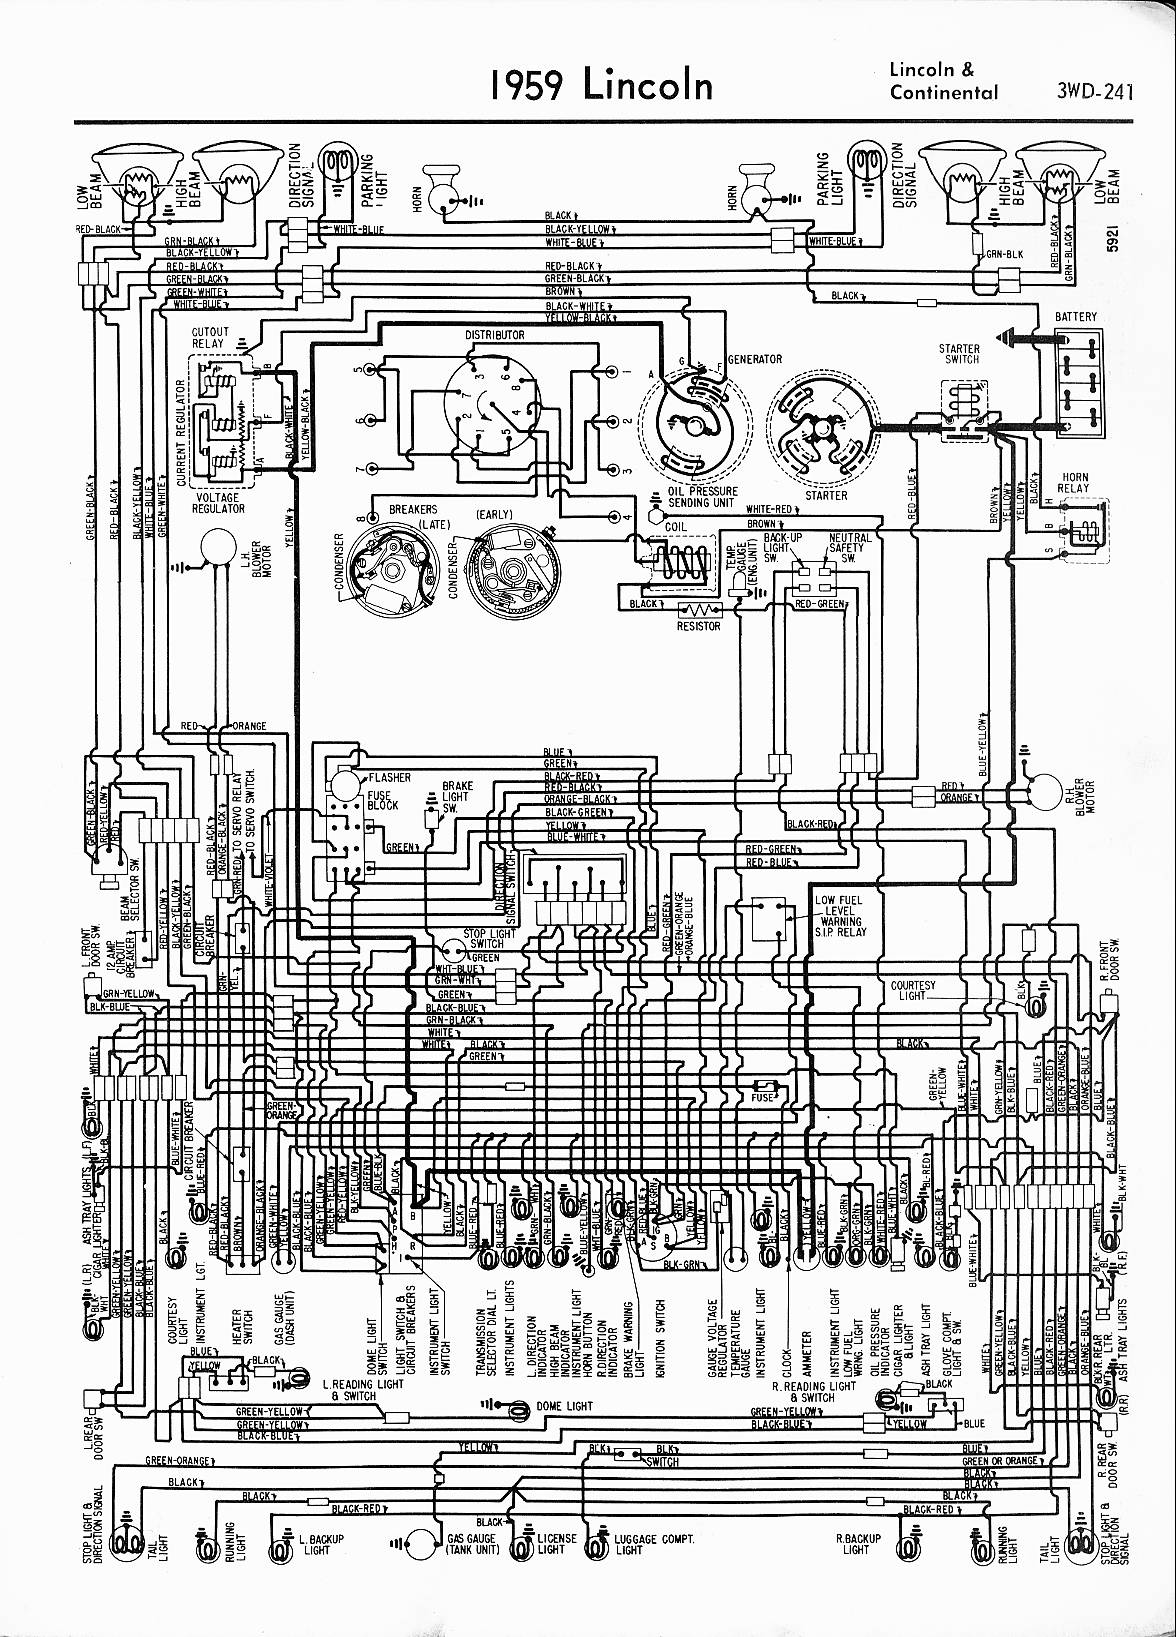 1999 lincoln navigator wiring diagram wiring diagram table Lincoln Continental Console